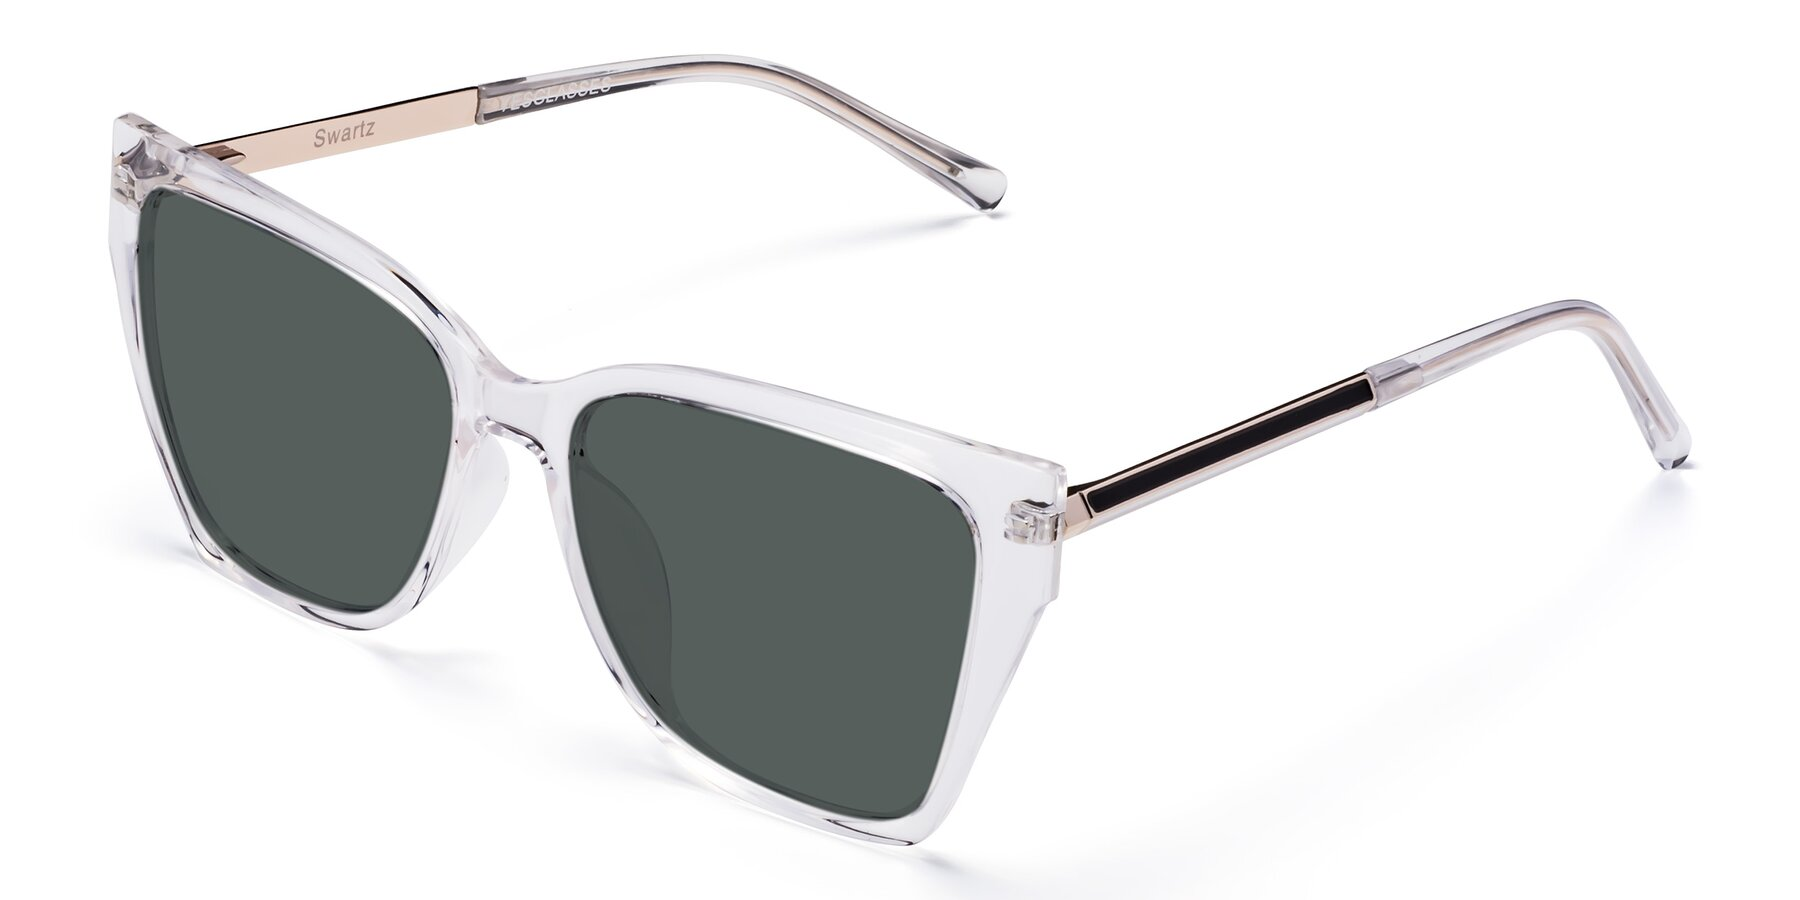 Angle of Swartz in Clear with Gray Polarized Lenses